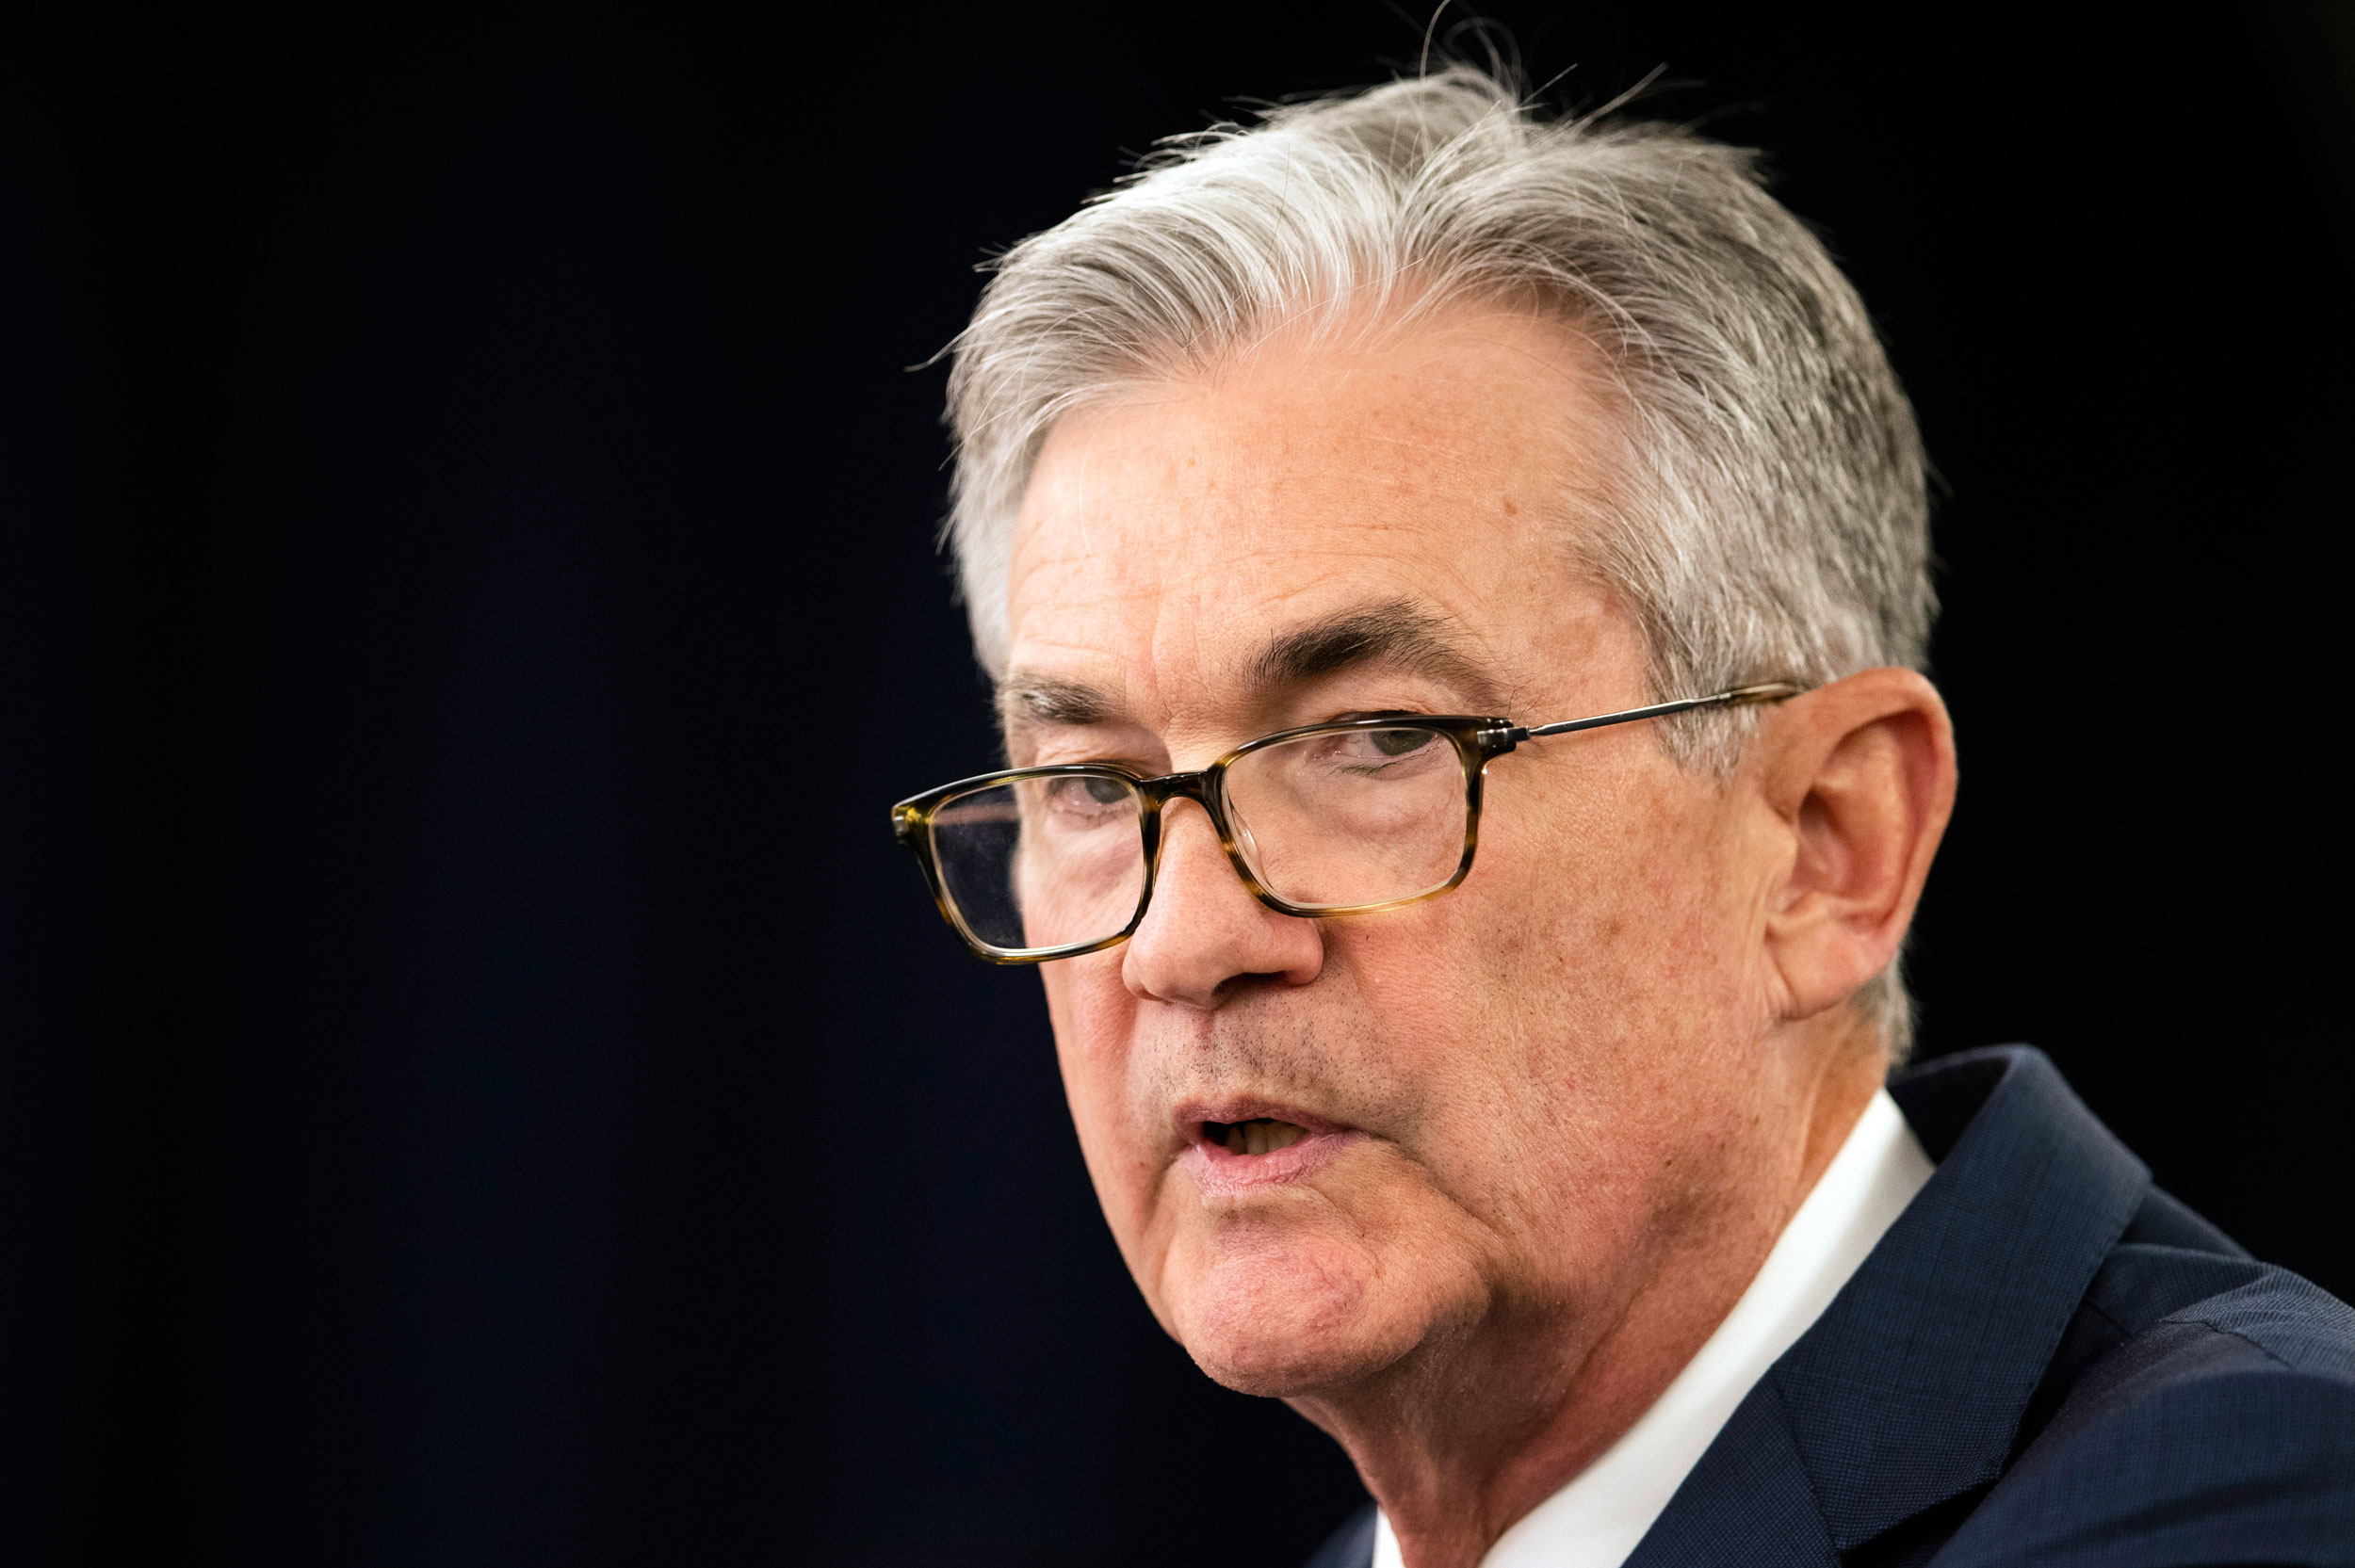 Federal Reserve Chairman Jerome Powell speaks during a news conference following a two-day Federal Open Market Committee meeting in Washington on July 31, 2019.